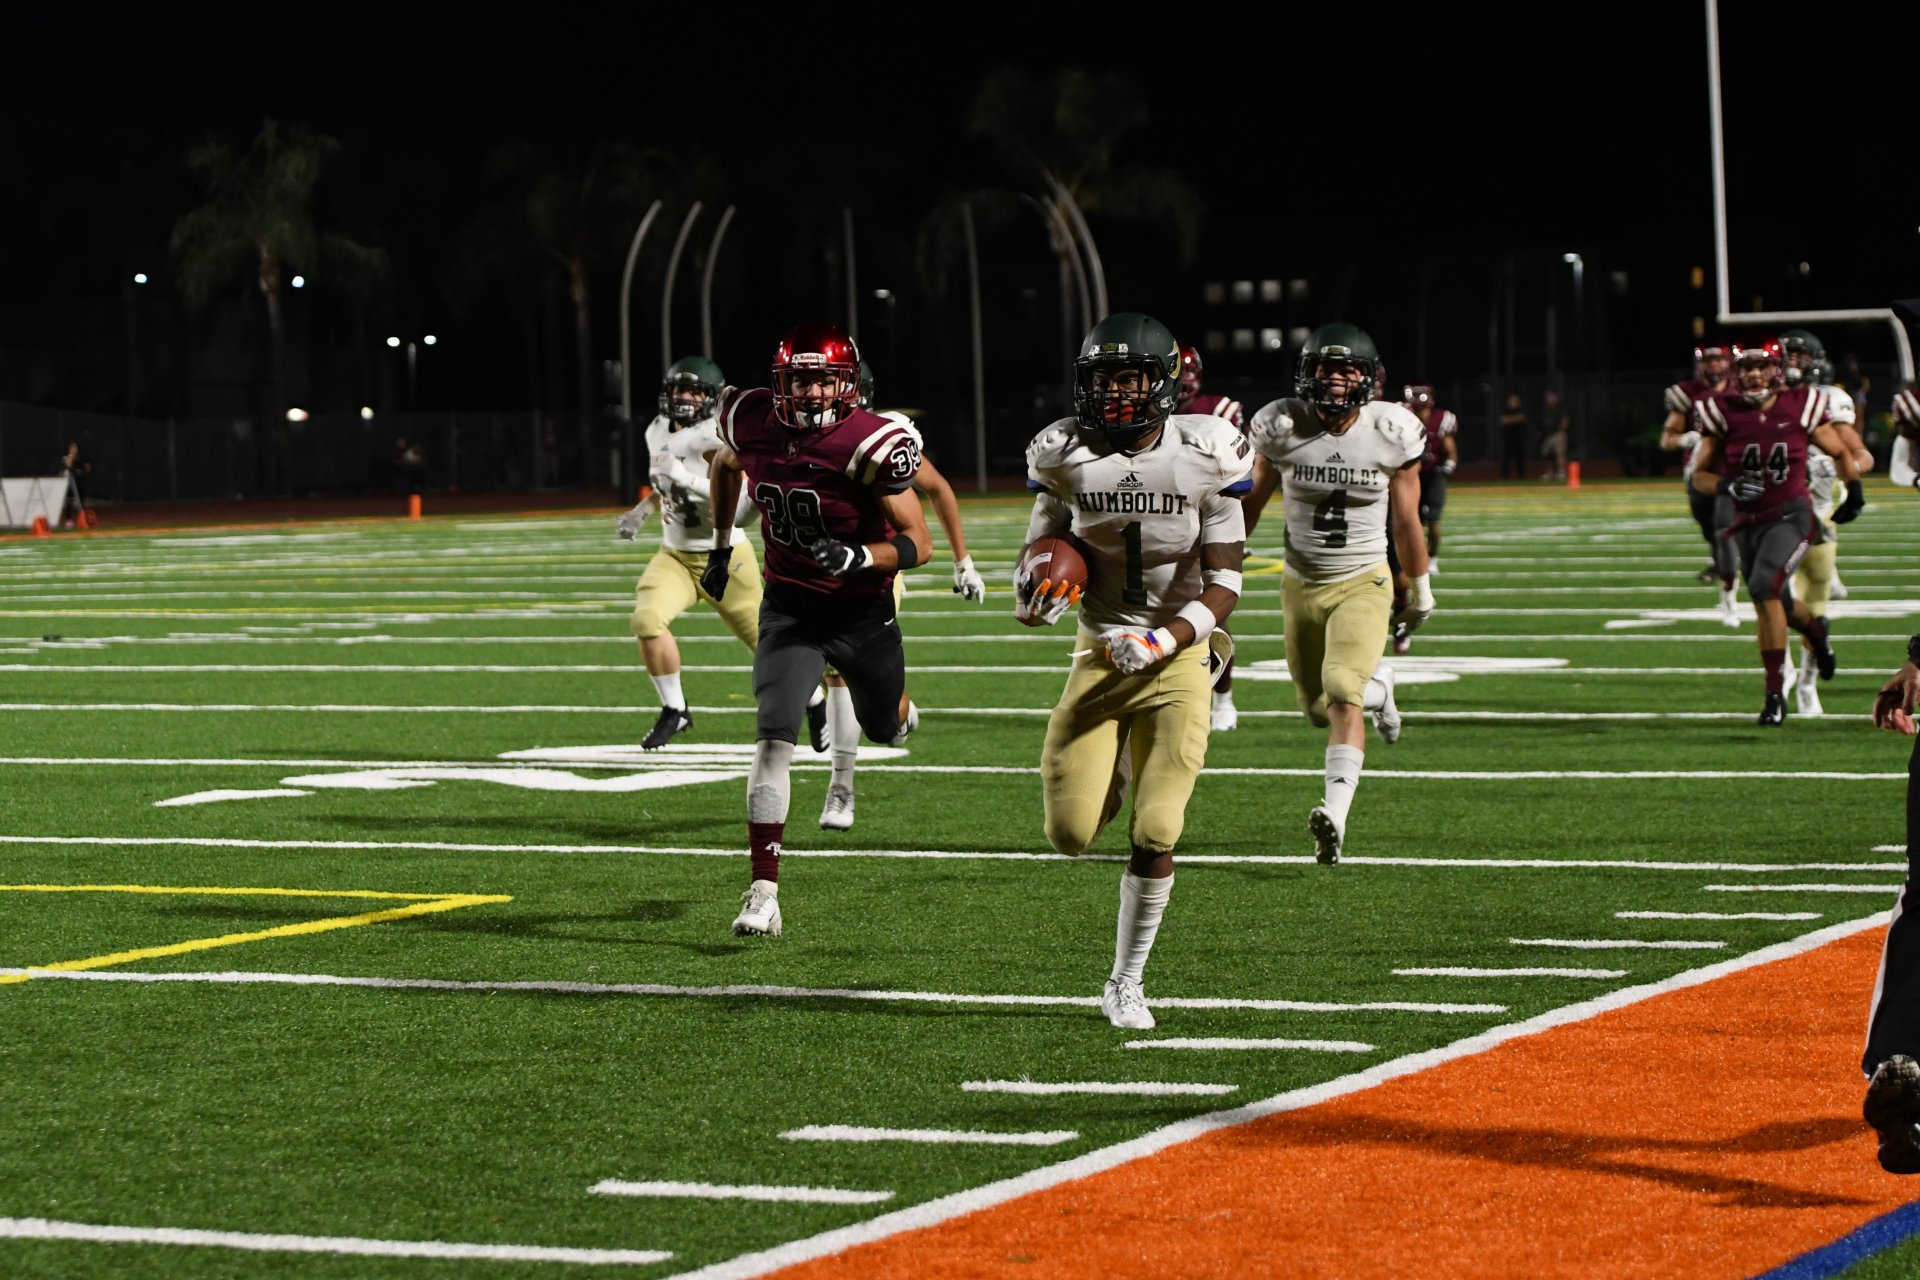 Jacks defensive back Ju'Wan Murphy returns the kickoff for a 85-yard touchdown as defensive back Adam Herrera trails to provide coverage. The Jacks lost to Azusa 37-21 on Sept. 29 at Citrus Stadium. | Photo courtesy of Asuza Media Technician: Holly Magnuson